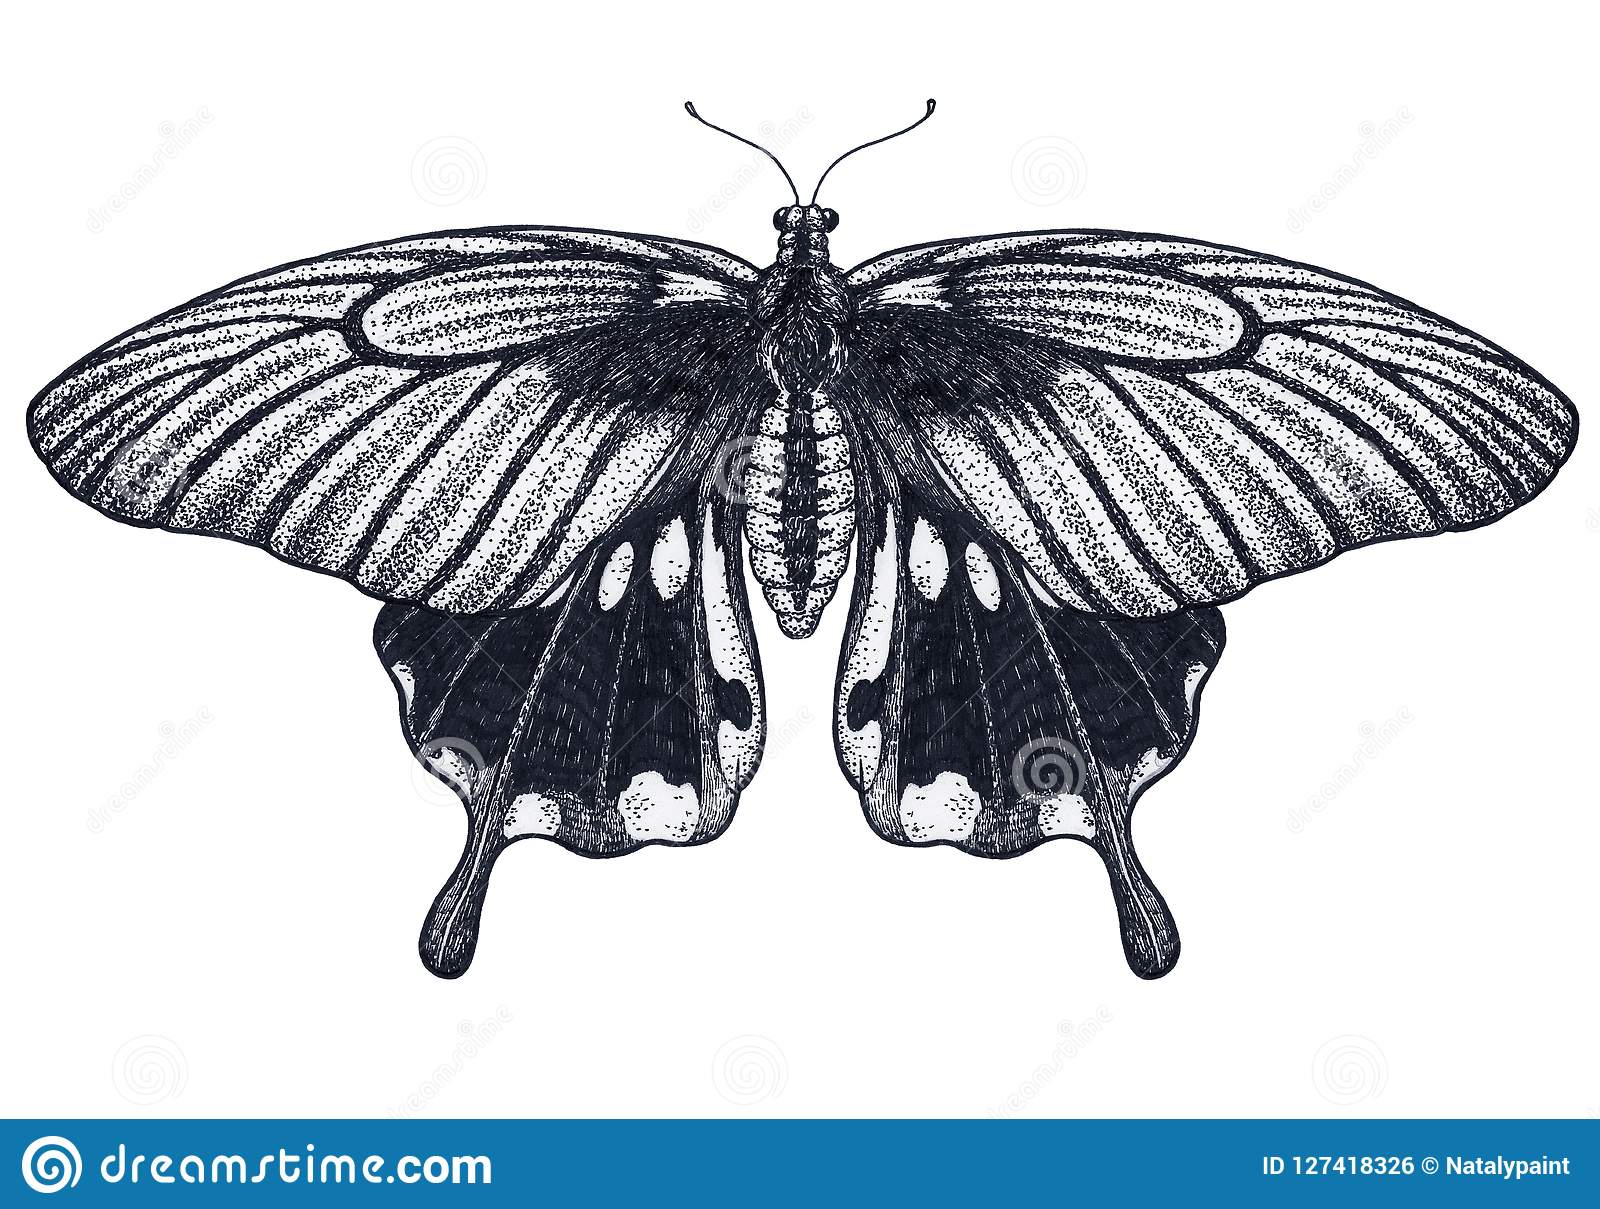 c139e4c59 Butterfly tattoo design. Tropical Butterfly. Papilio Memnon. Dotwork tattoo.  Traditional black dot style ink. Royalty-Free Illustration